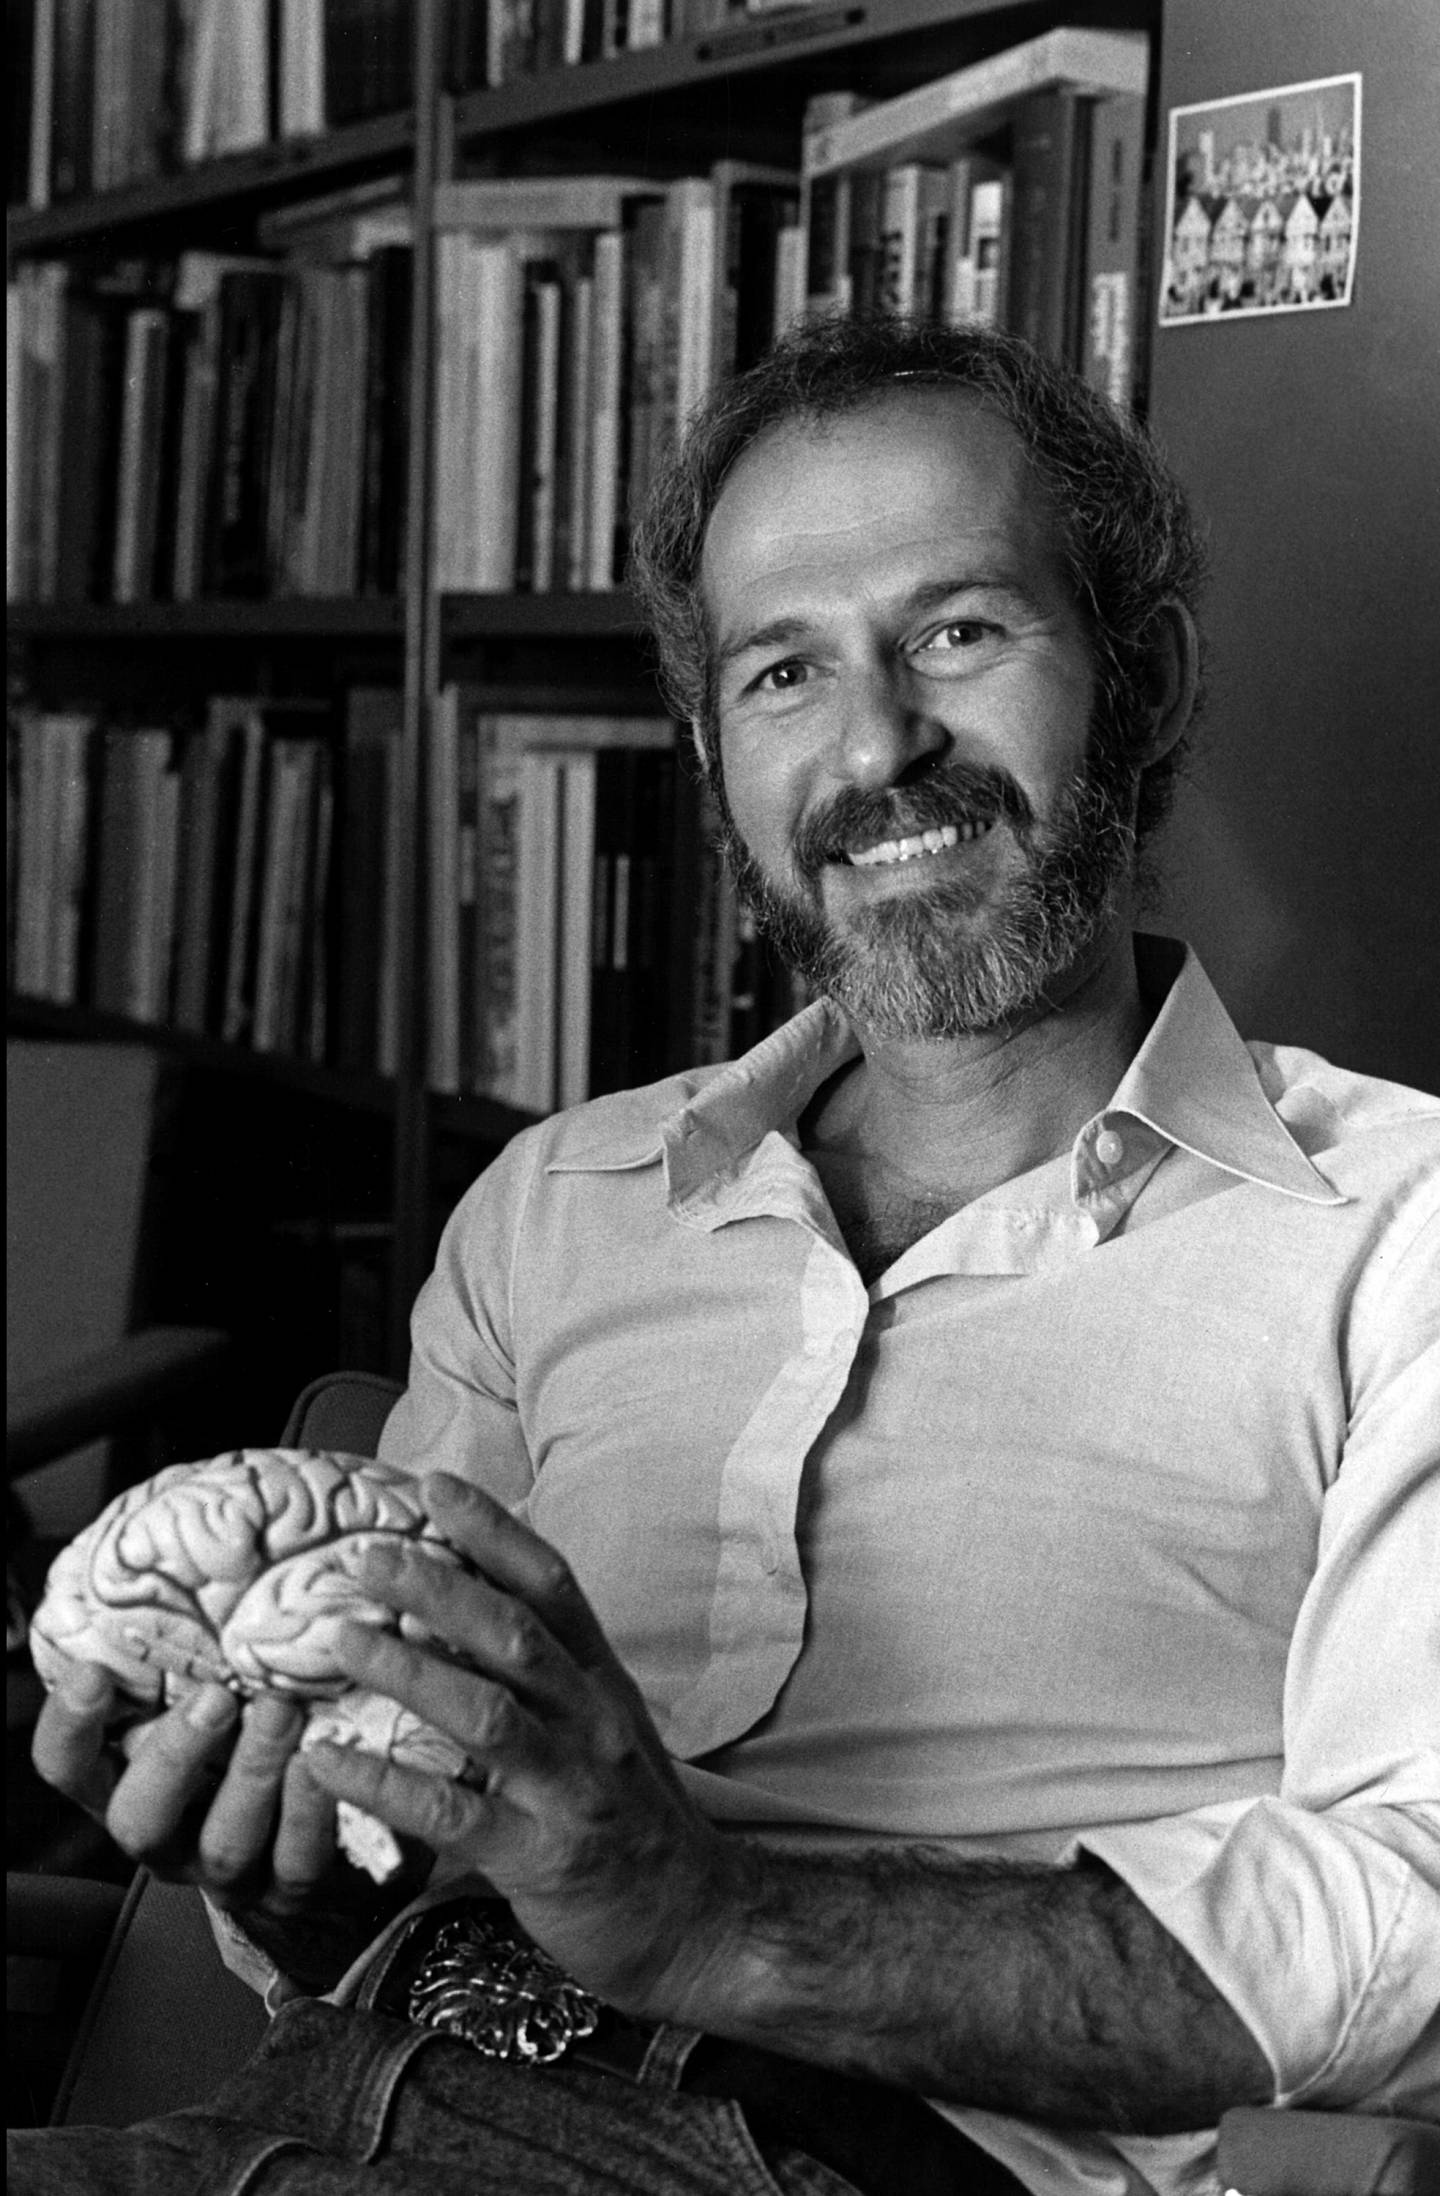 Barry Jacobs holds a model of a human brain